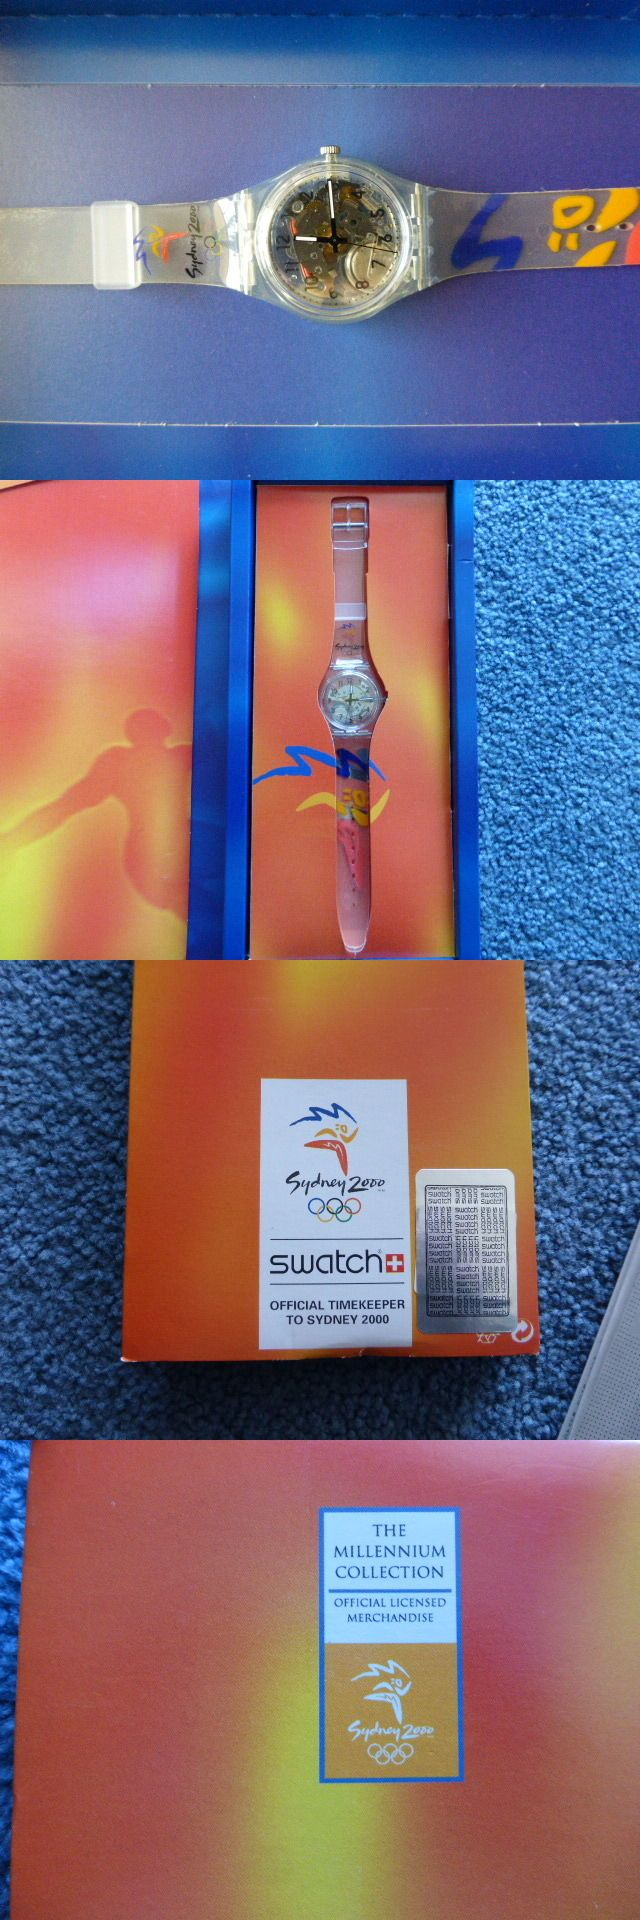 """Other Jewelry and Watches 98863: Sydney 2000 Olympics """"The Millennium Collection Swatch Watch - Vintage Nib Nev -> BUY IT NOW ONLY: $34 on eBay!"""